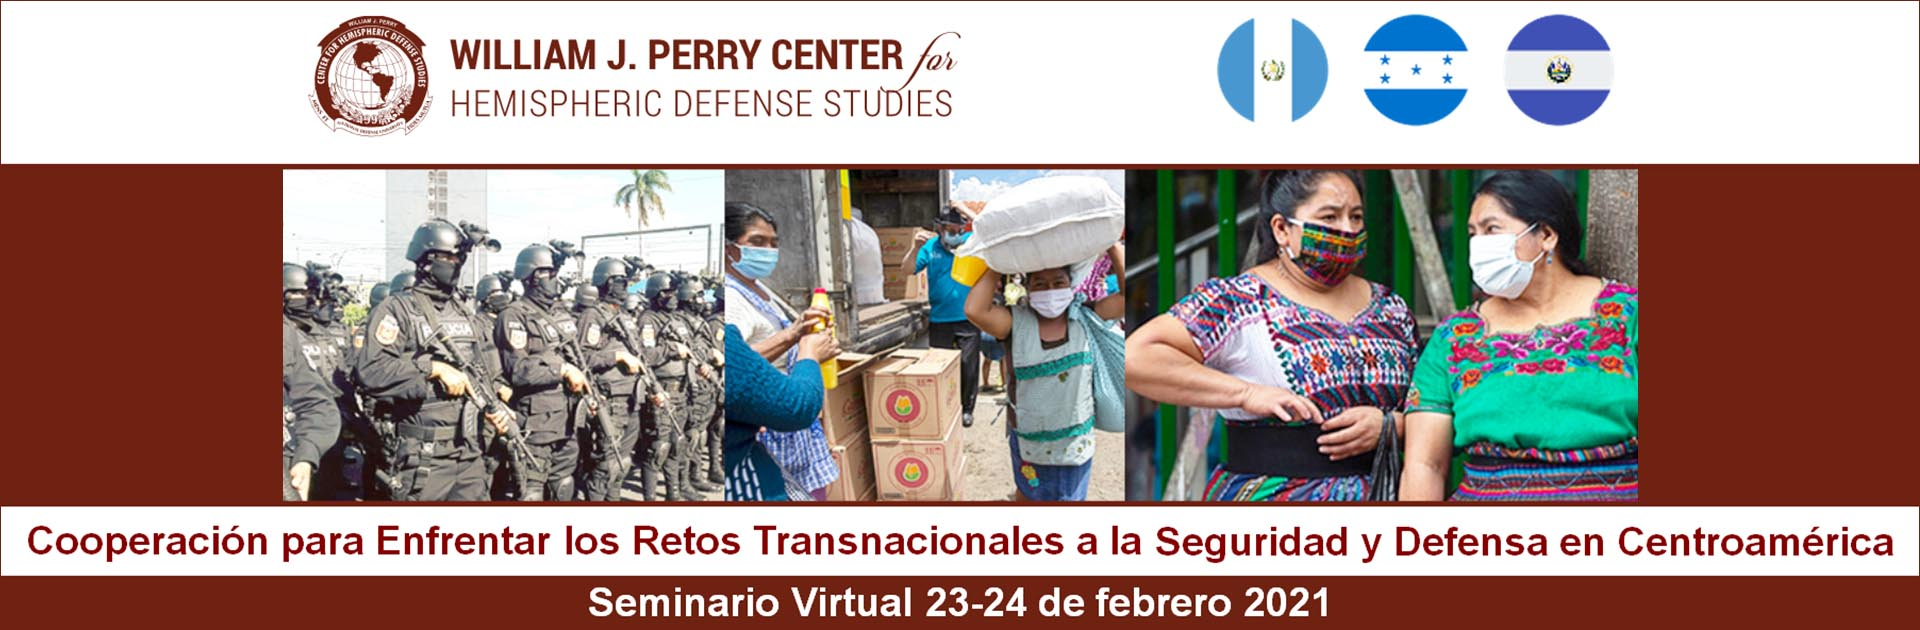 Cooperating to Confront Transnational Challenges to the Defense and Security of Central America